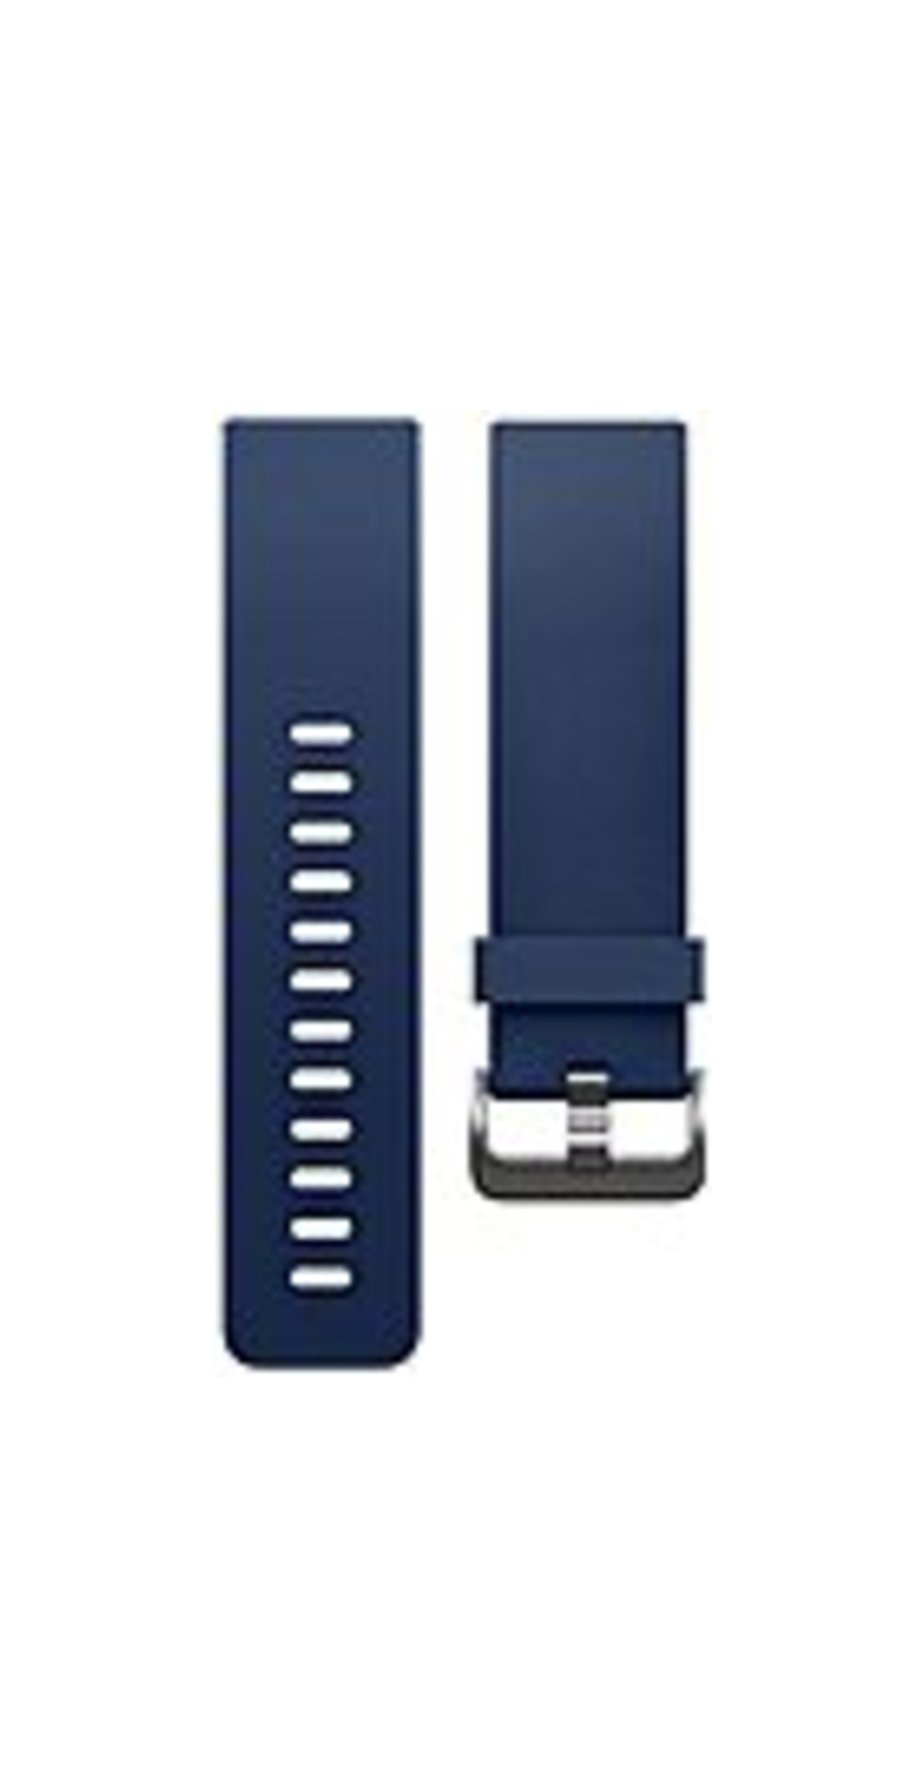 Fitbit Blaze Classic Band - Blue - Elastomer, Stainless Steel